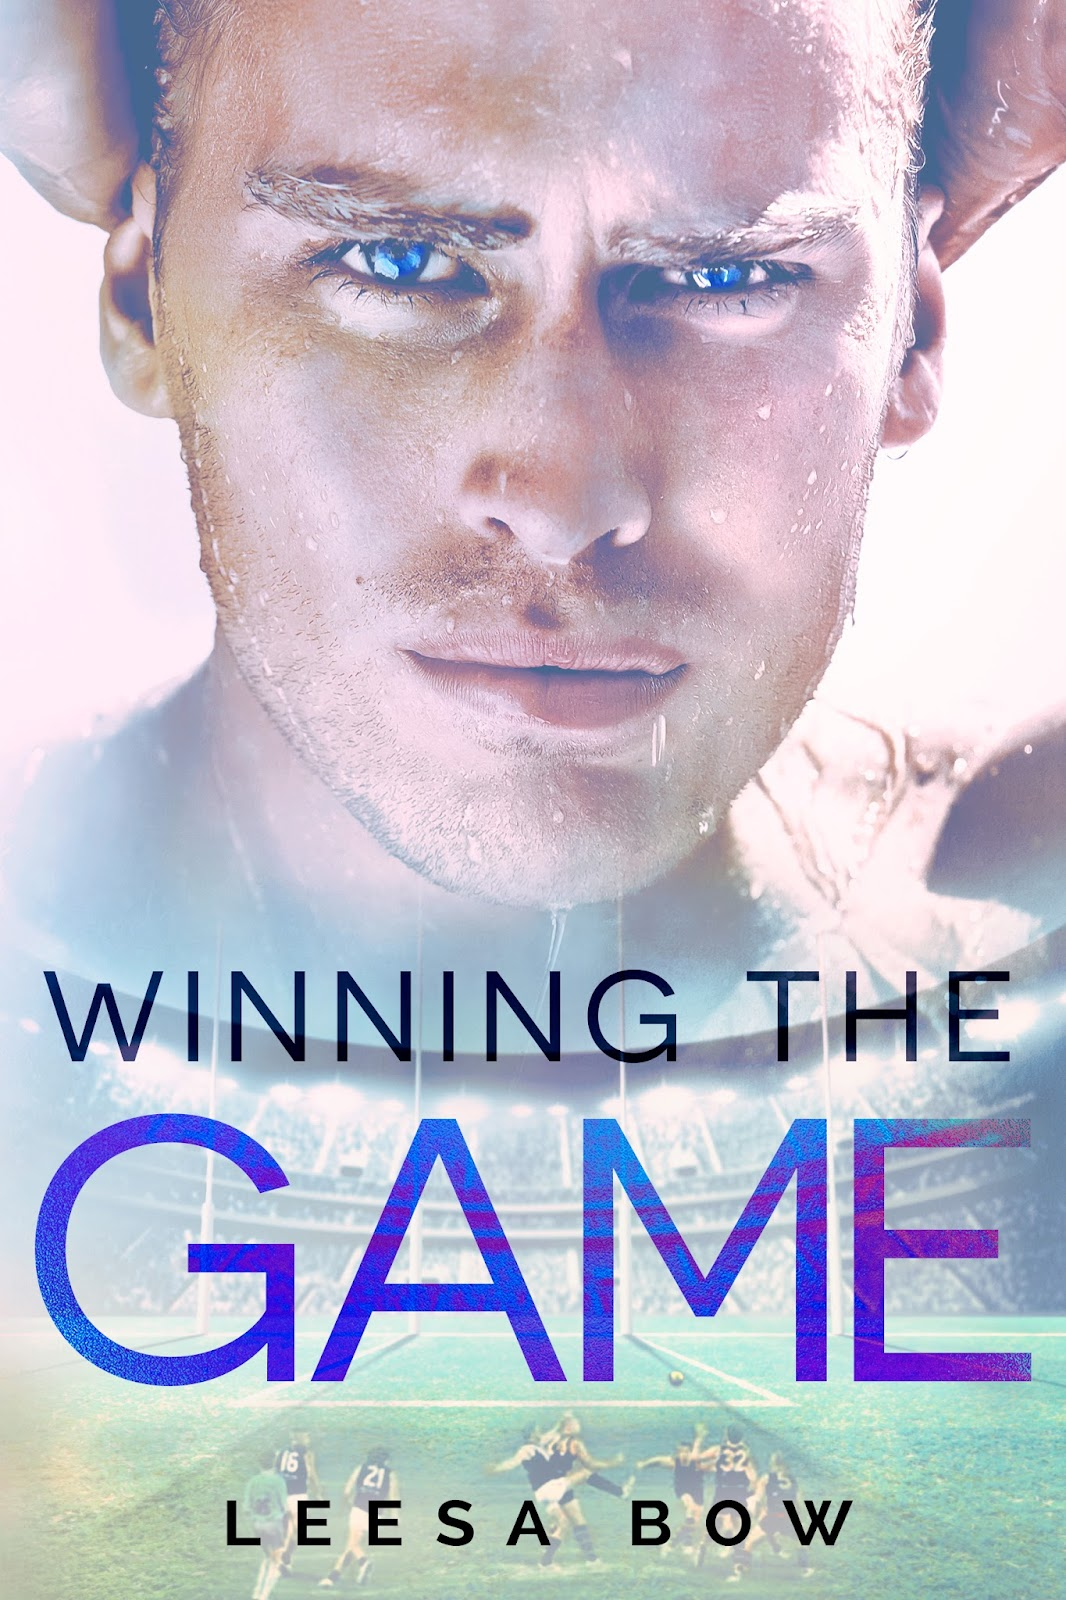 WinningtheGame.Ebook.jpg